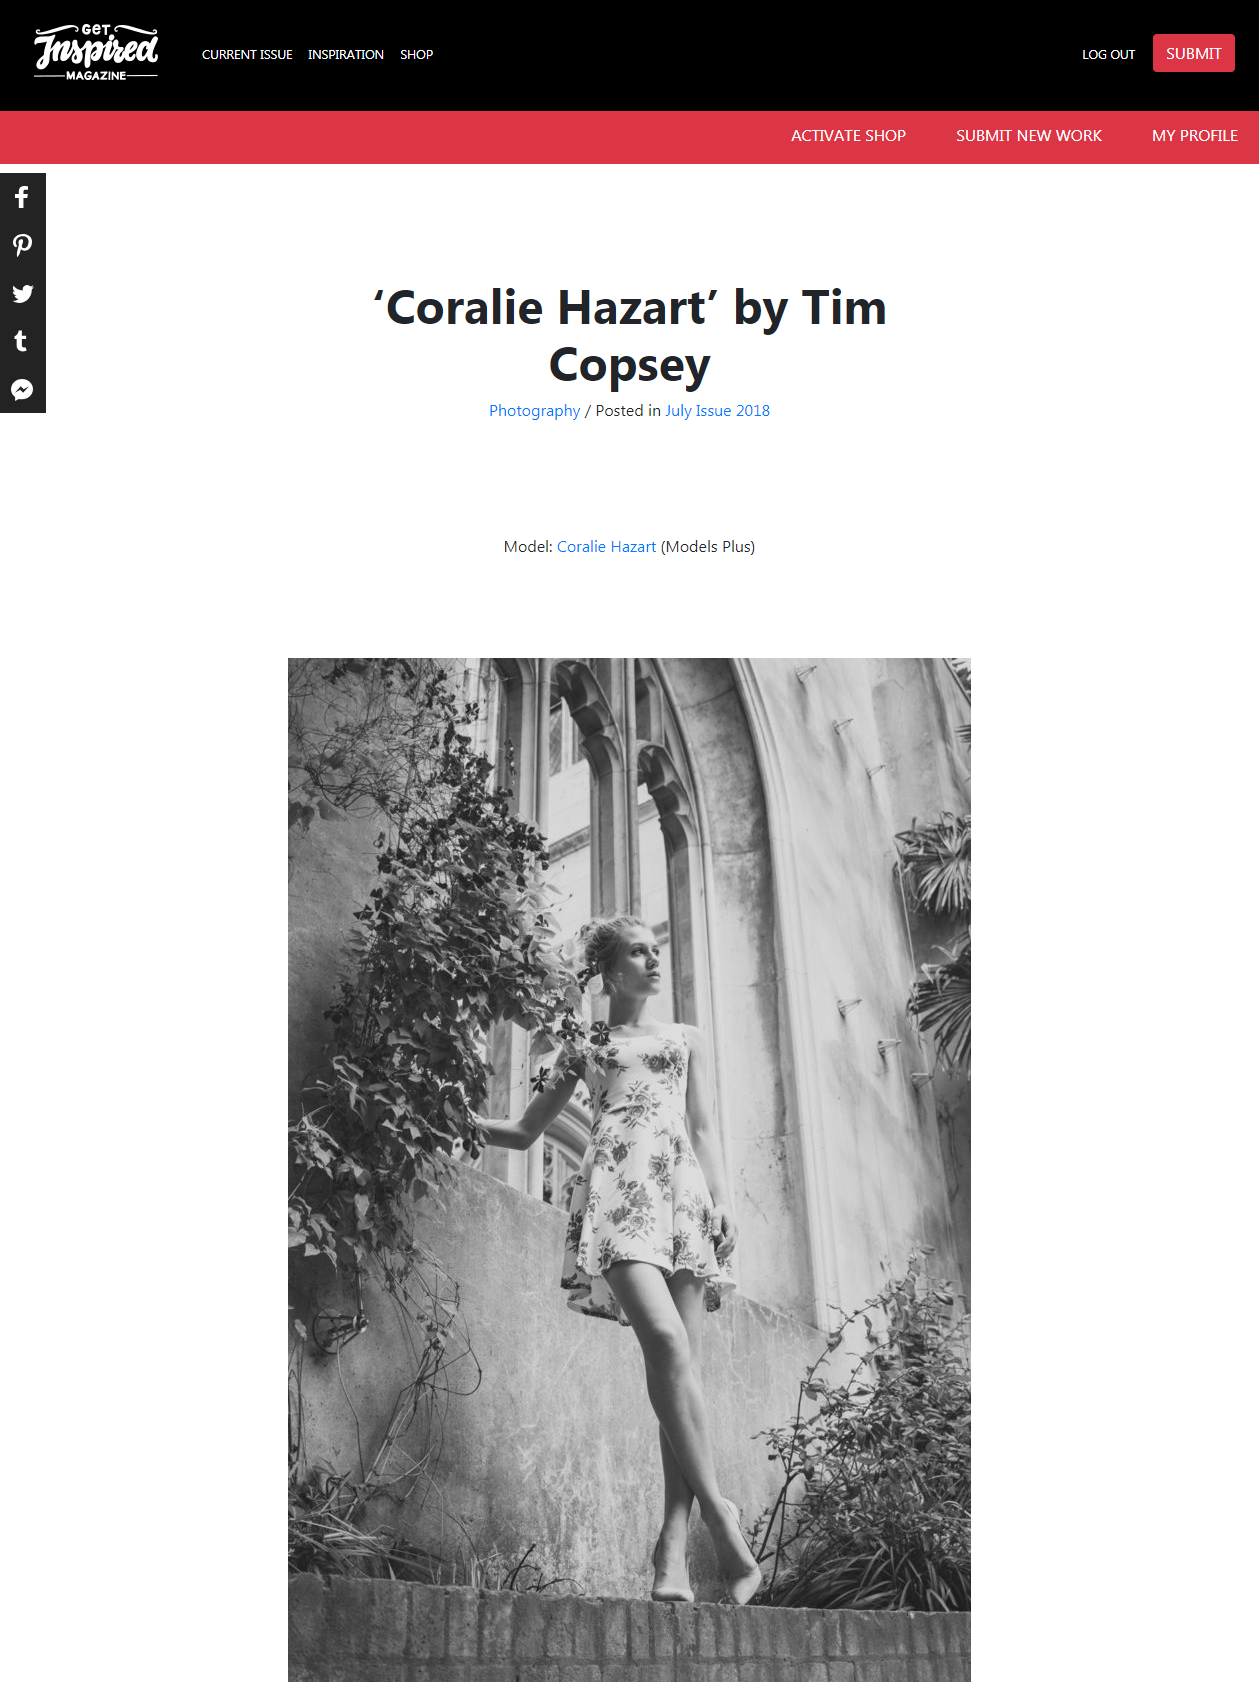 Published in Get Inspired Magazine with Coralie Hazart